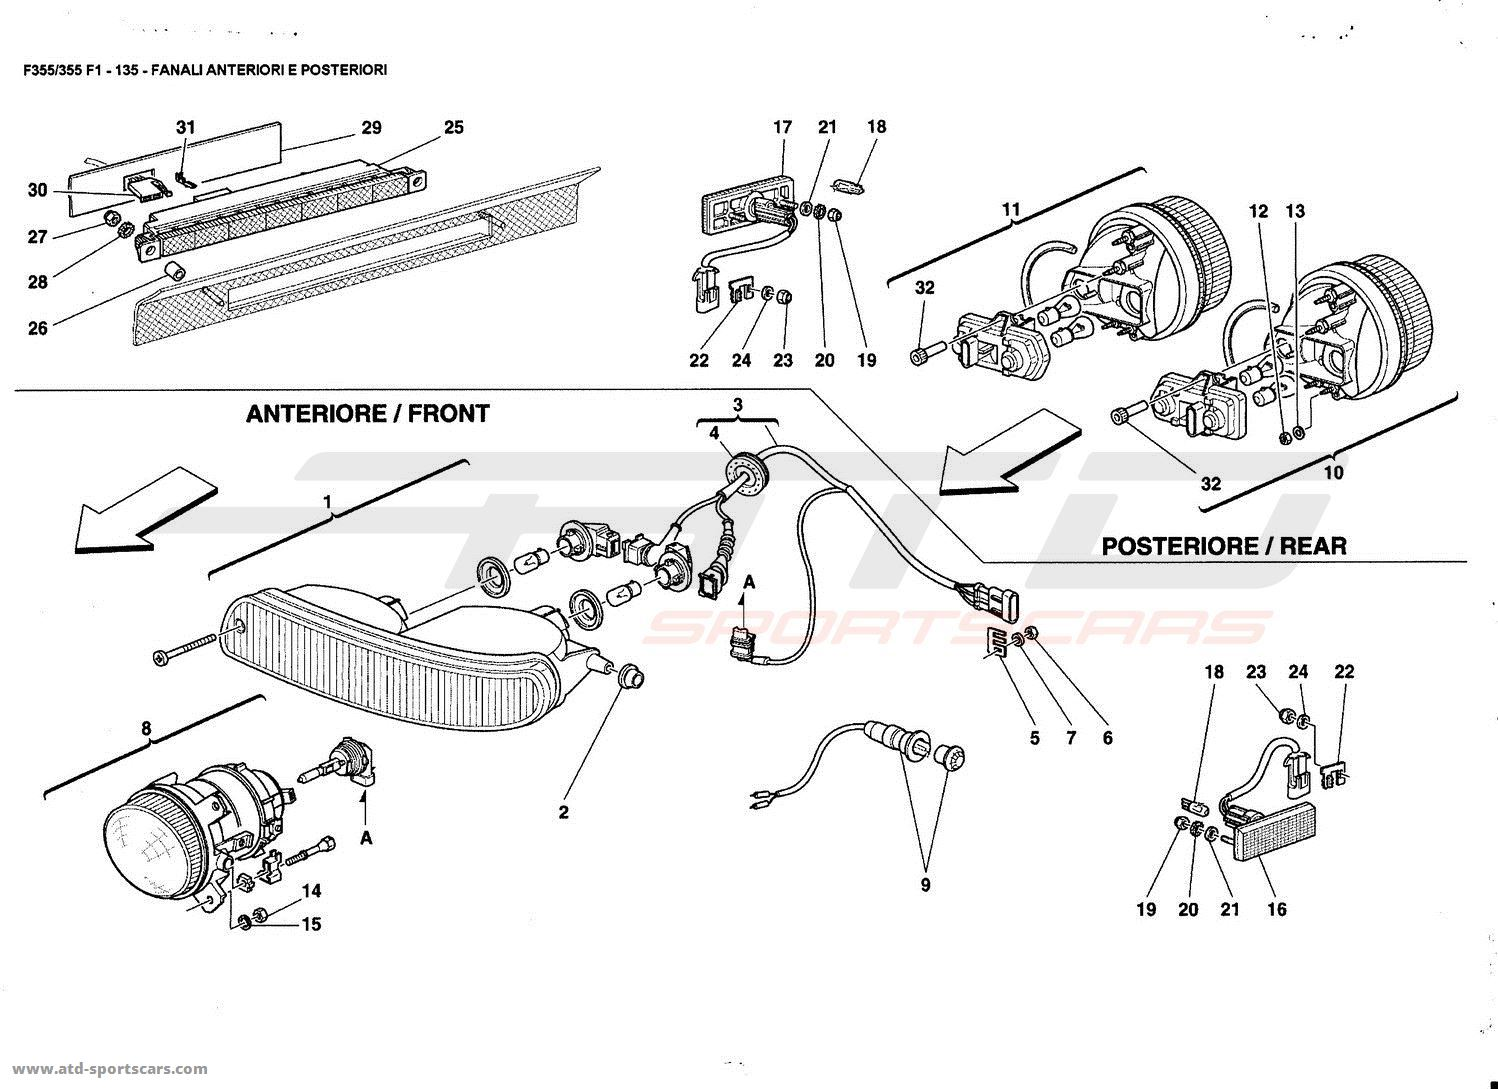 Ferrari 355 Wiring Diagram - Catalogue of Schemas on ferrari 246 wiring diagram, ferrari 330 wiring diagram, ferrari 308 frame, ferrari 308 fuel pump, ferrari 308 radiator, ferrari 308 tires, ferrari 308 firing order, ferrari 355 wiring diagram, ferrari 308 oil filter, ferrari 308 wheels, ferrari 308 parts, ferrari 308 transformer, ferrari mondial wiring diagram, ferrari 308 gtsi, ferrari 456 wiring diagram, ferrari 308 exhaust, ferrari 308 seats, ferrari 308 speedometer, ferrari 308 engine, ferrari 308 timing marks,